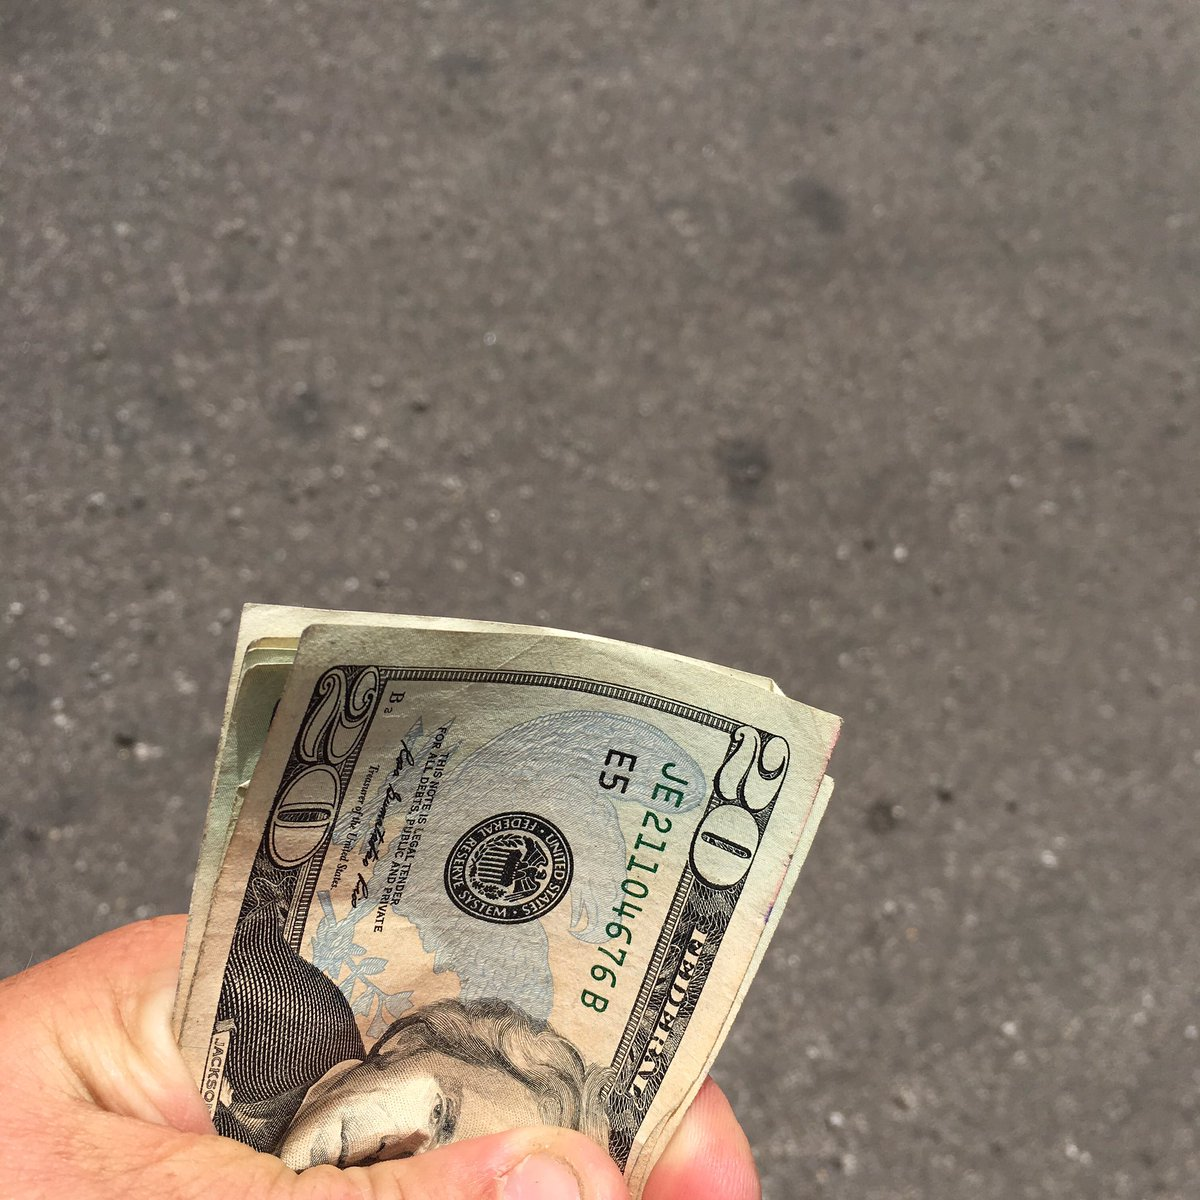 Anyone in #Cle lose some money today? Found it at w3rd & prospect, id love to return it. How much? & what color band https://t.co/dLKDUhEvbu